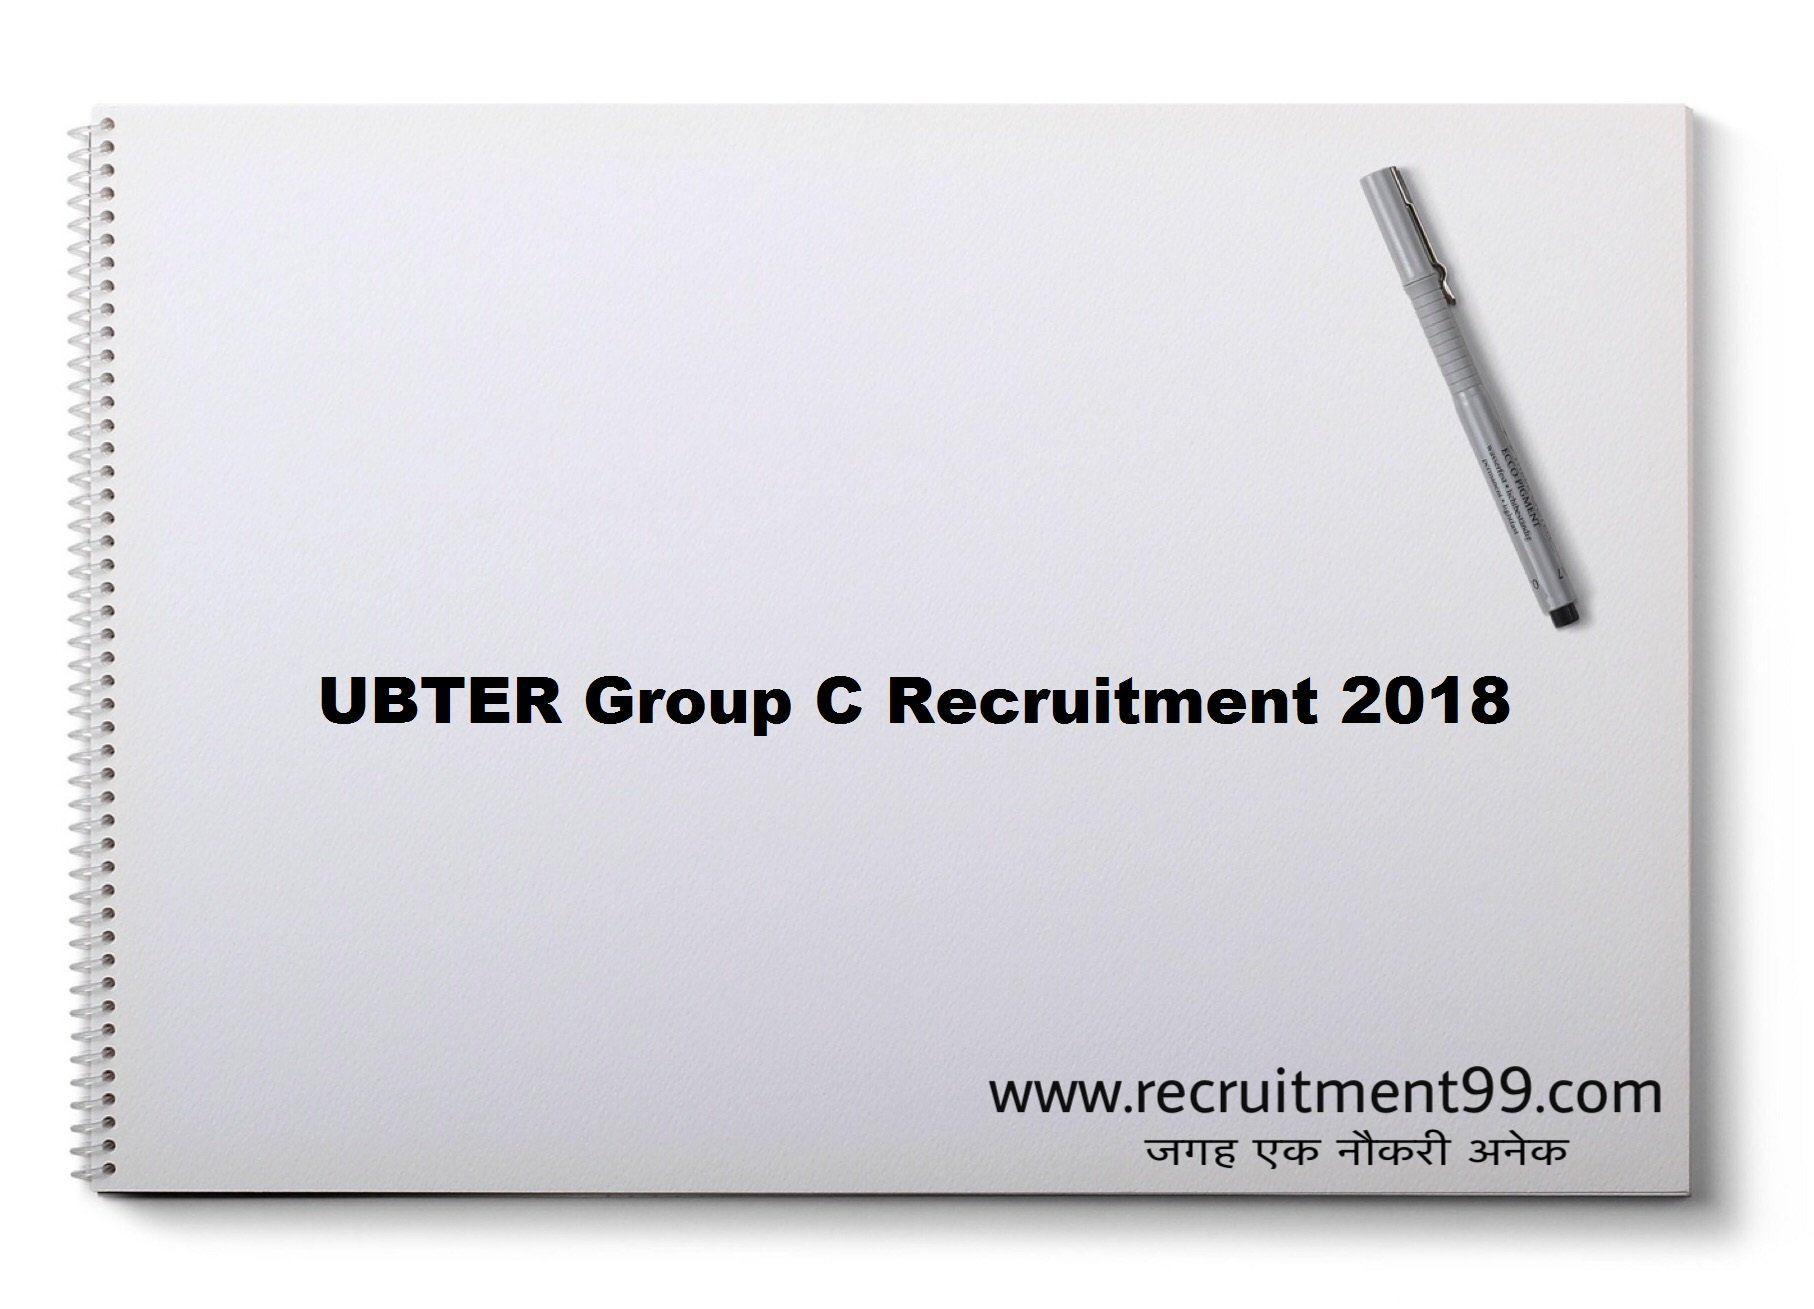 UBTER Group C Recruitment Admit Card Result 2018